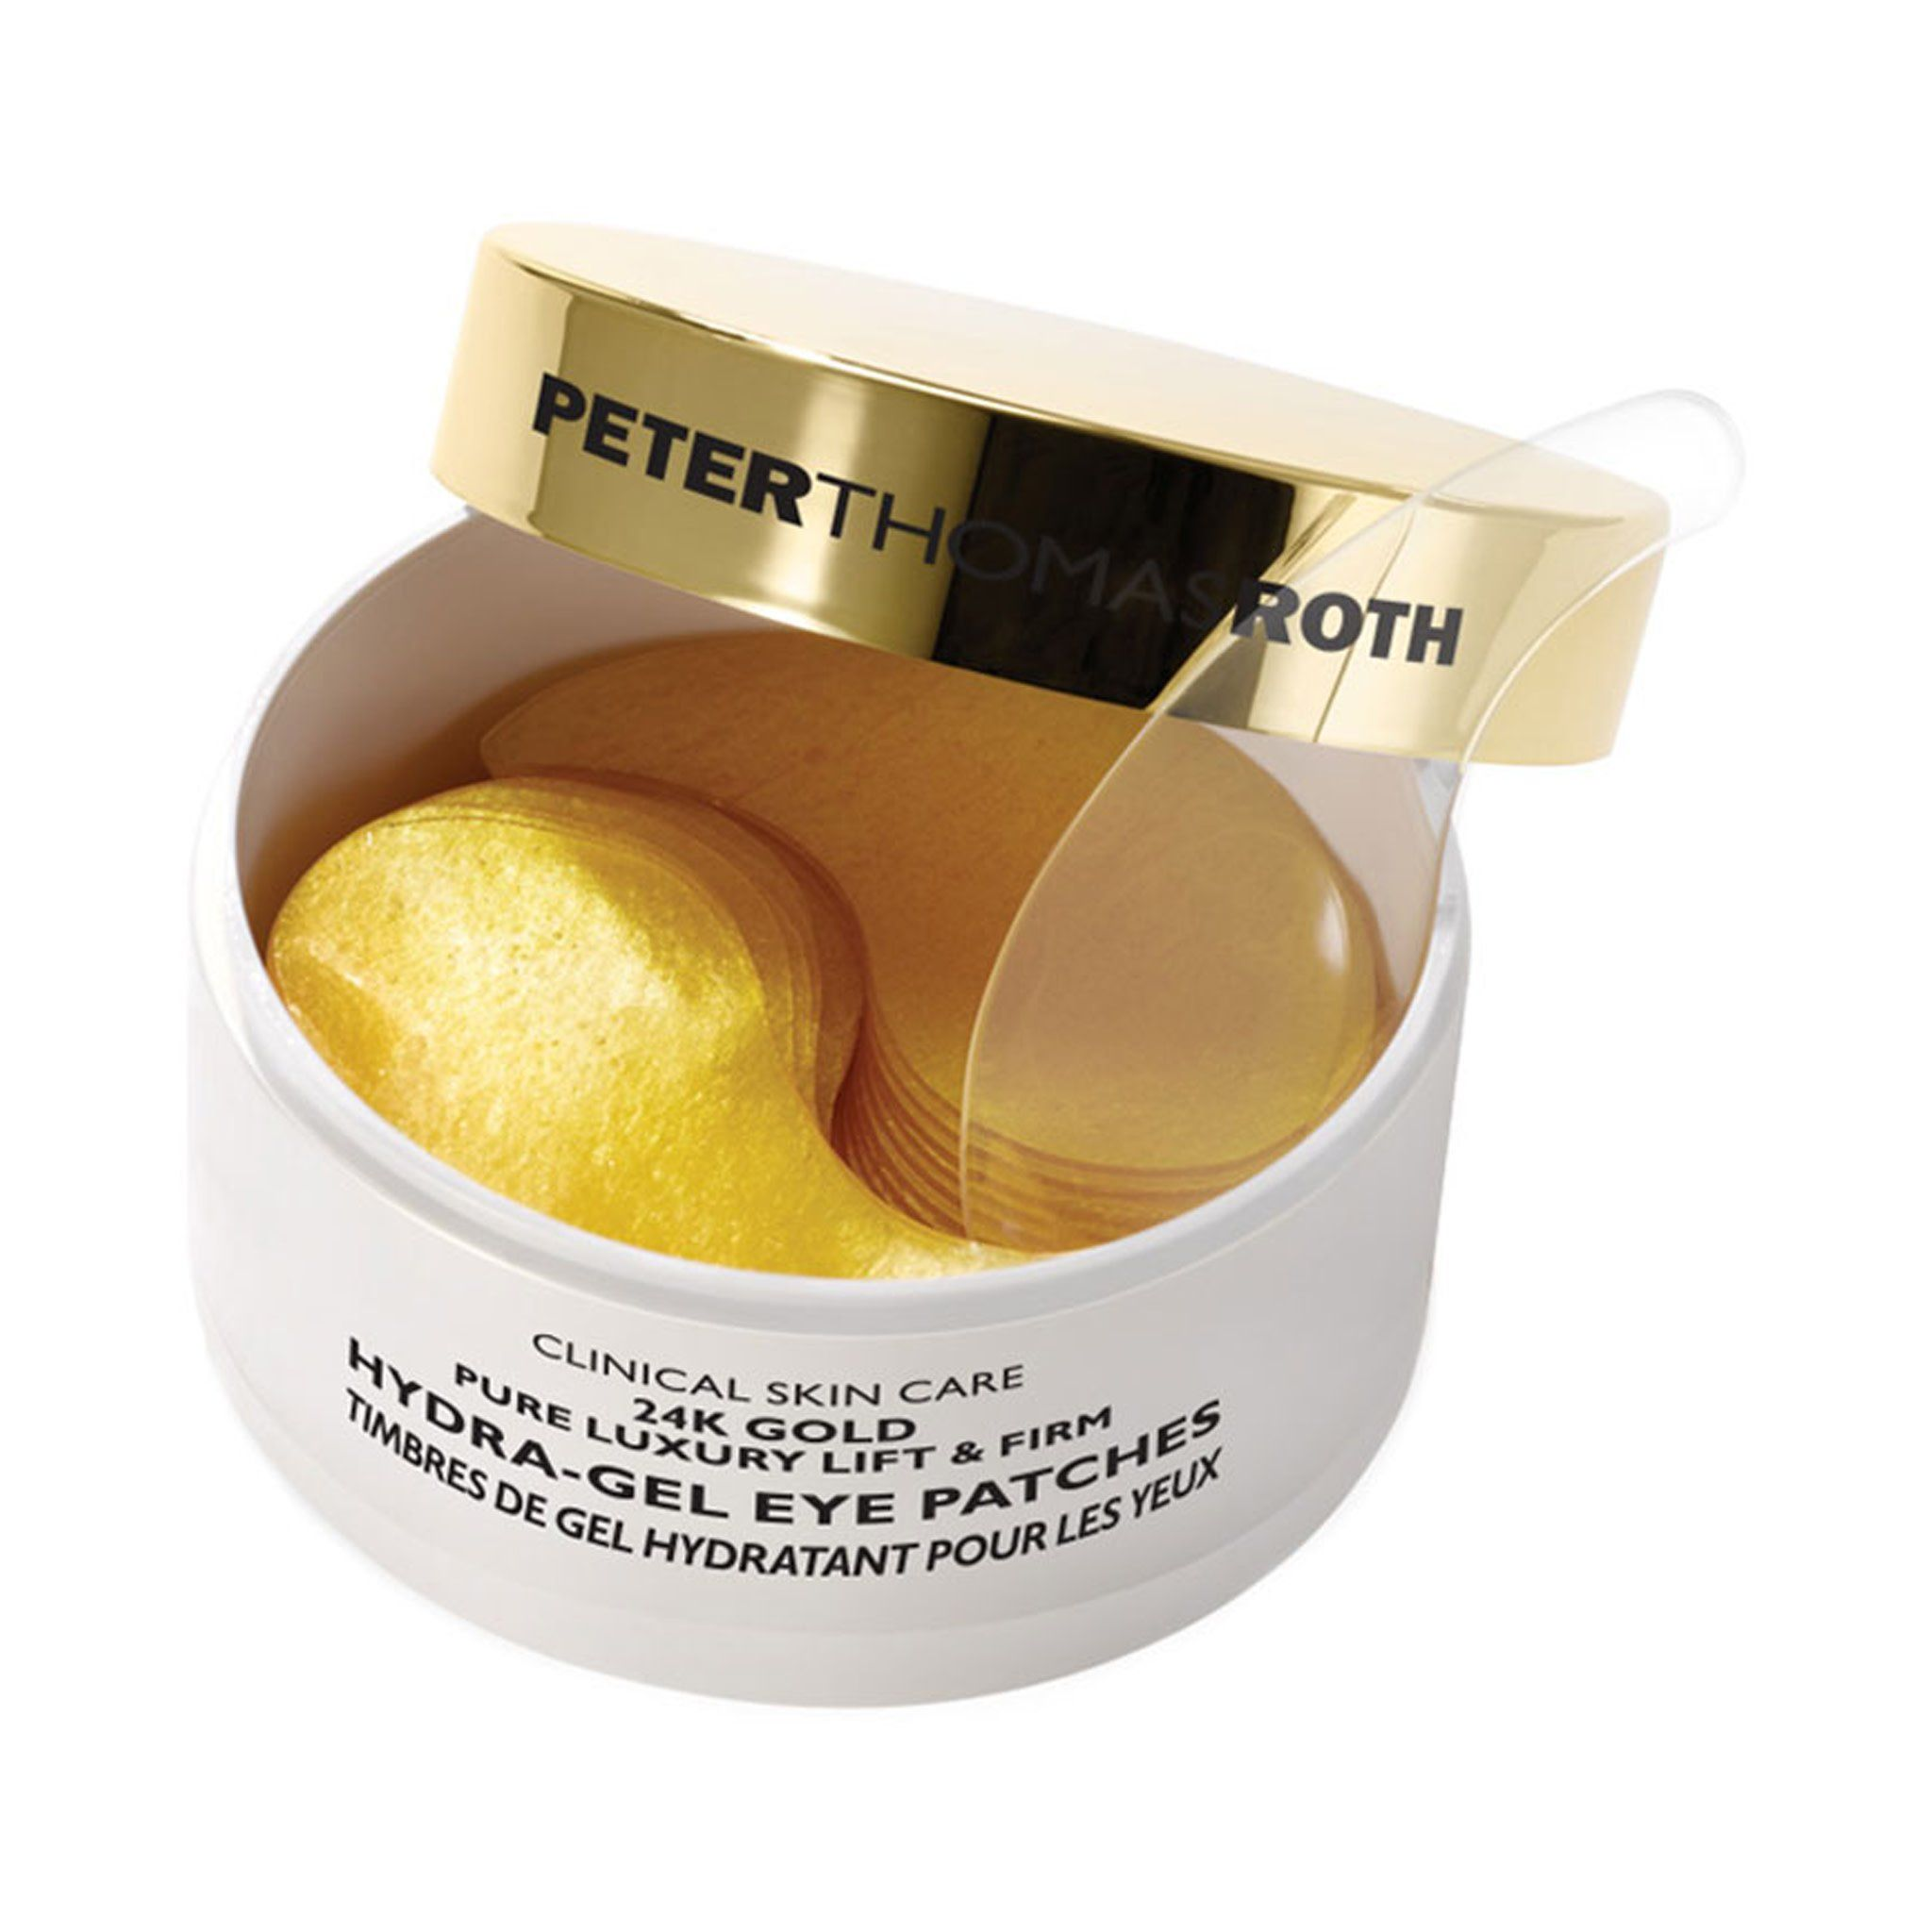 24k Gold Pure Luxury Lift And Firm Hydra Gel Eye Patches Anti Aging Skin Products Pure Products Peter Thomas Roth